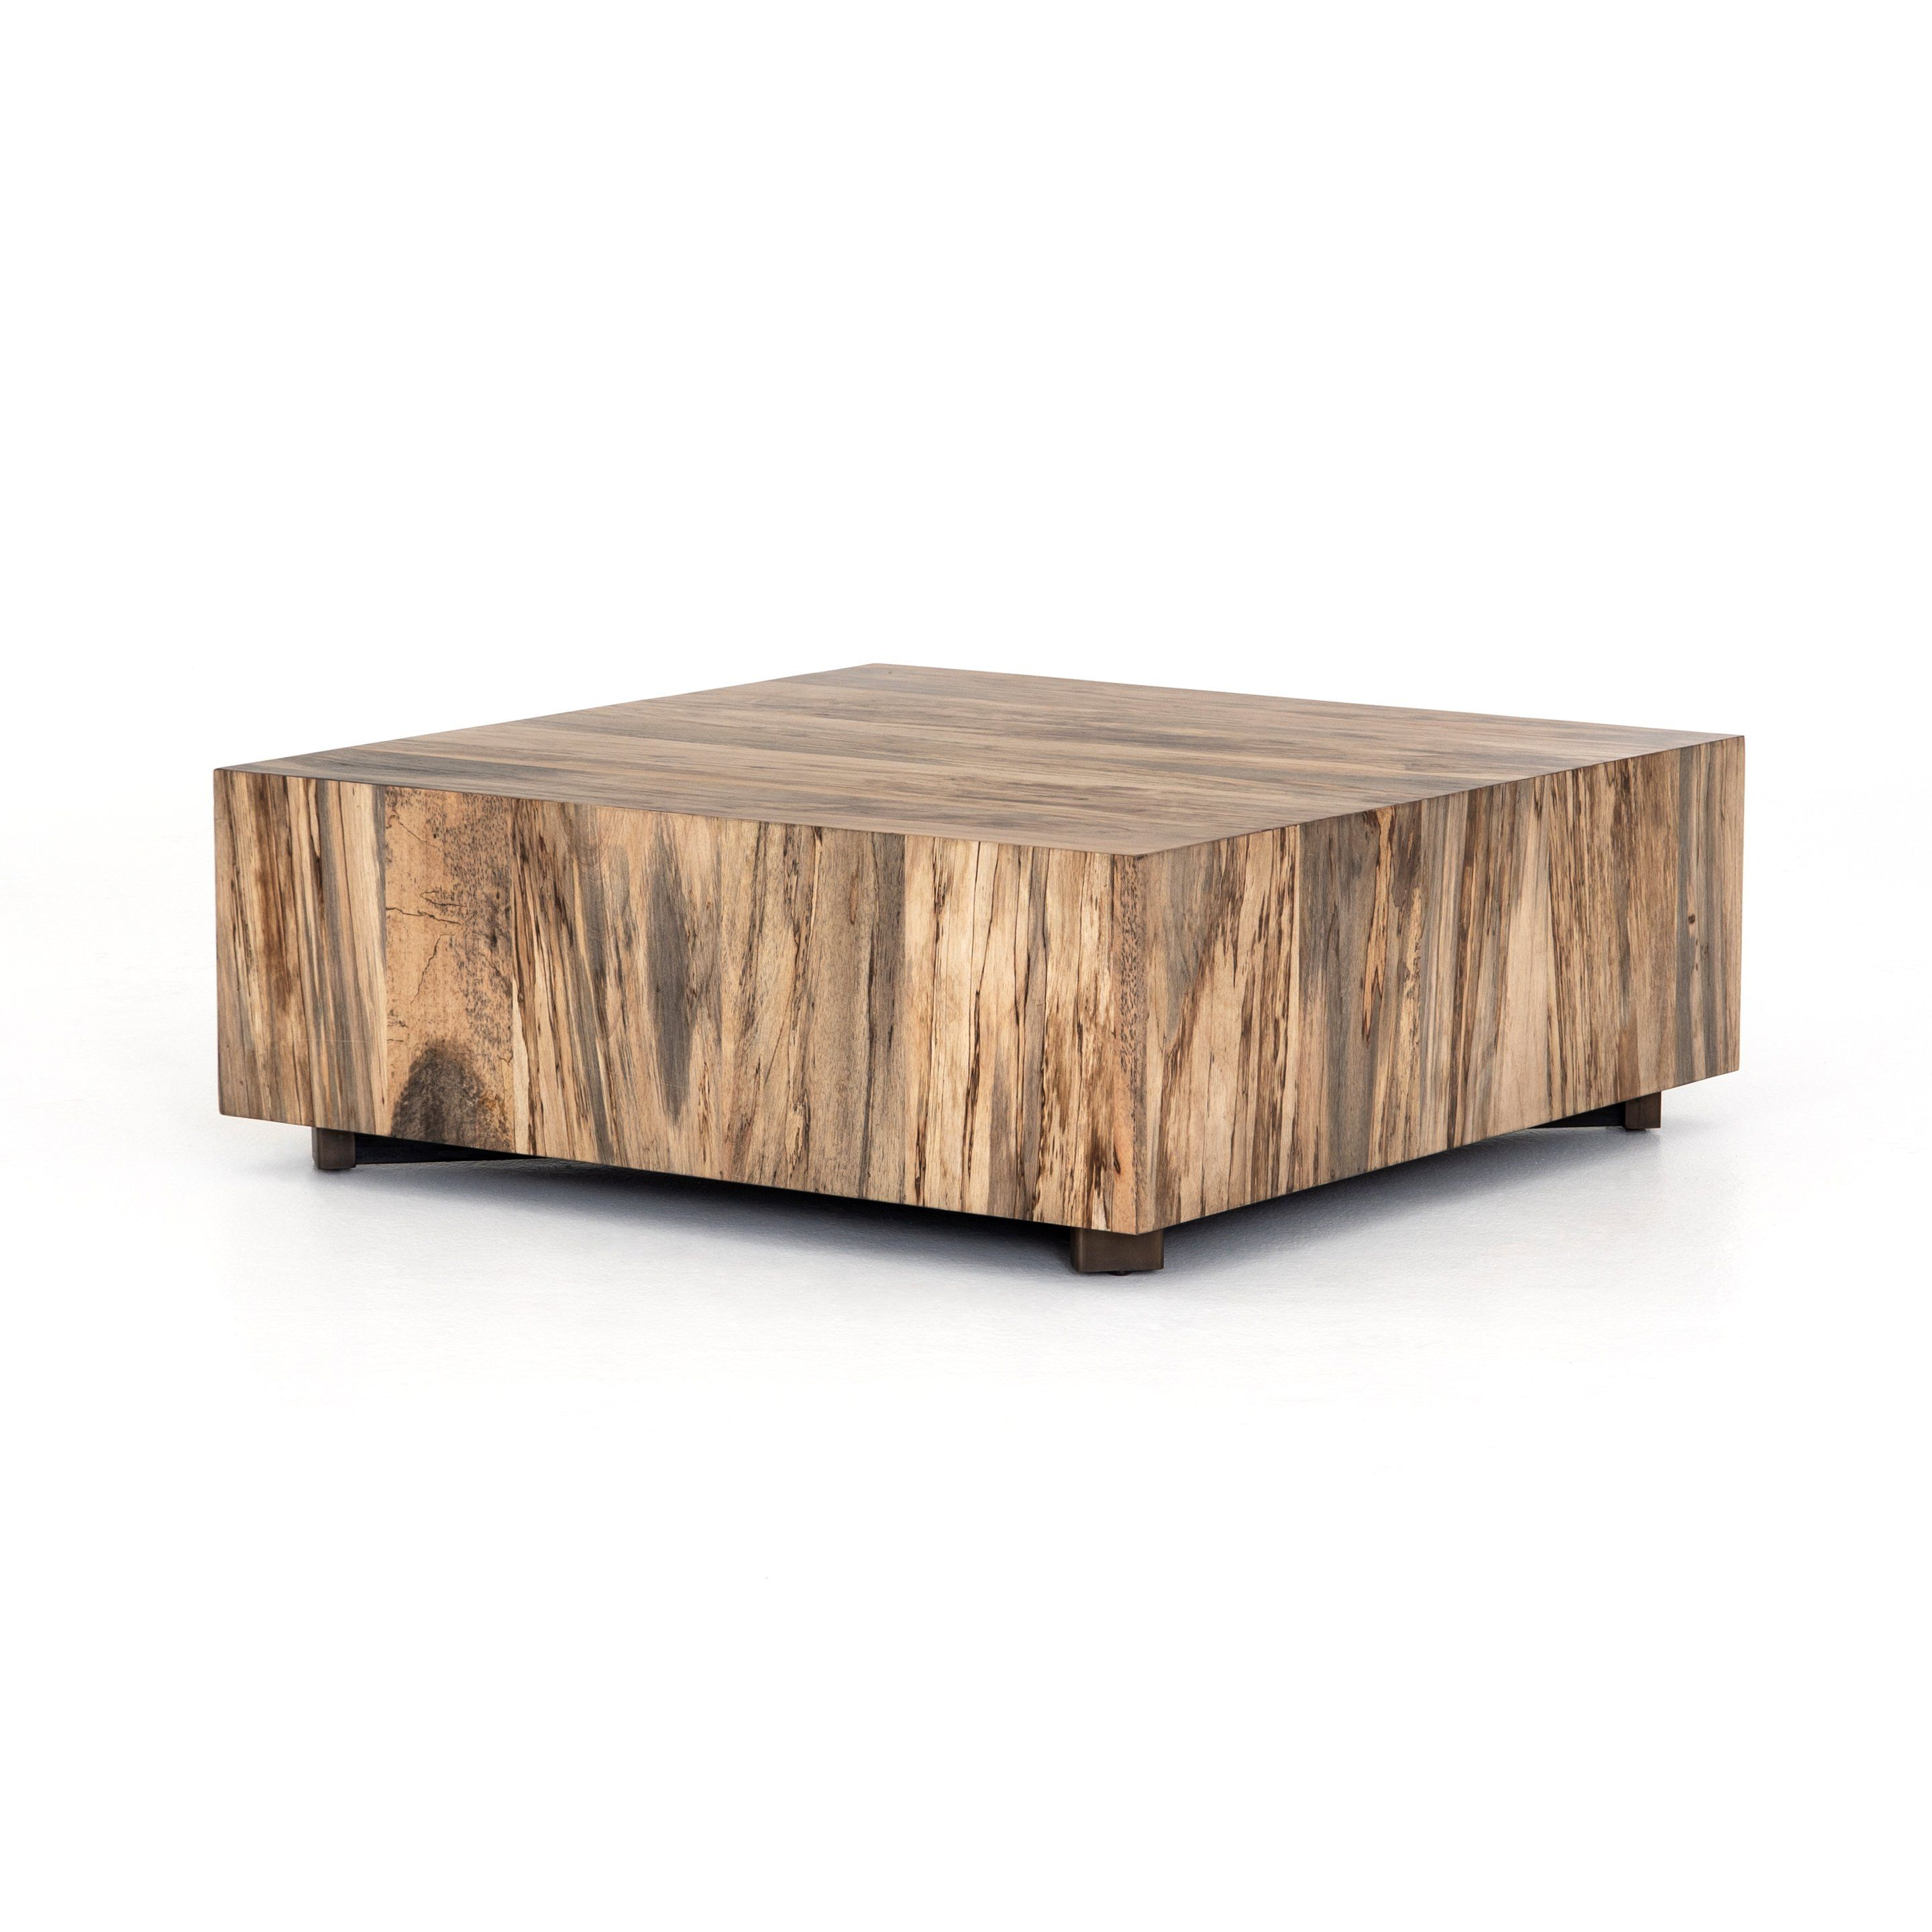 Hudson Square Coffee Table In 2021 Cube Coffee Table Coffee Table Wood Coffee Table [ 2880 x 2880 Pixel ]